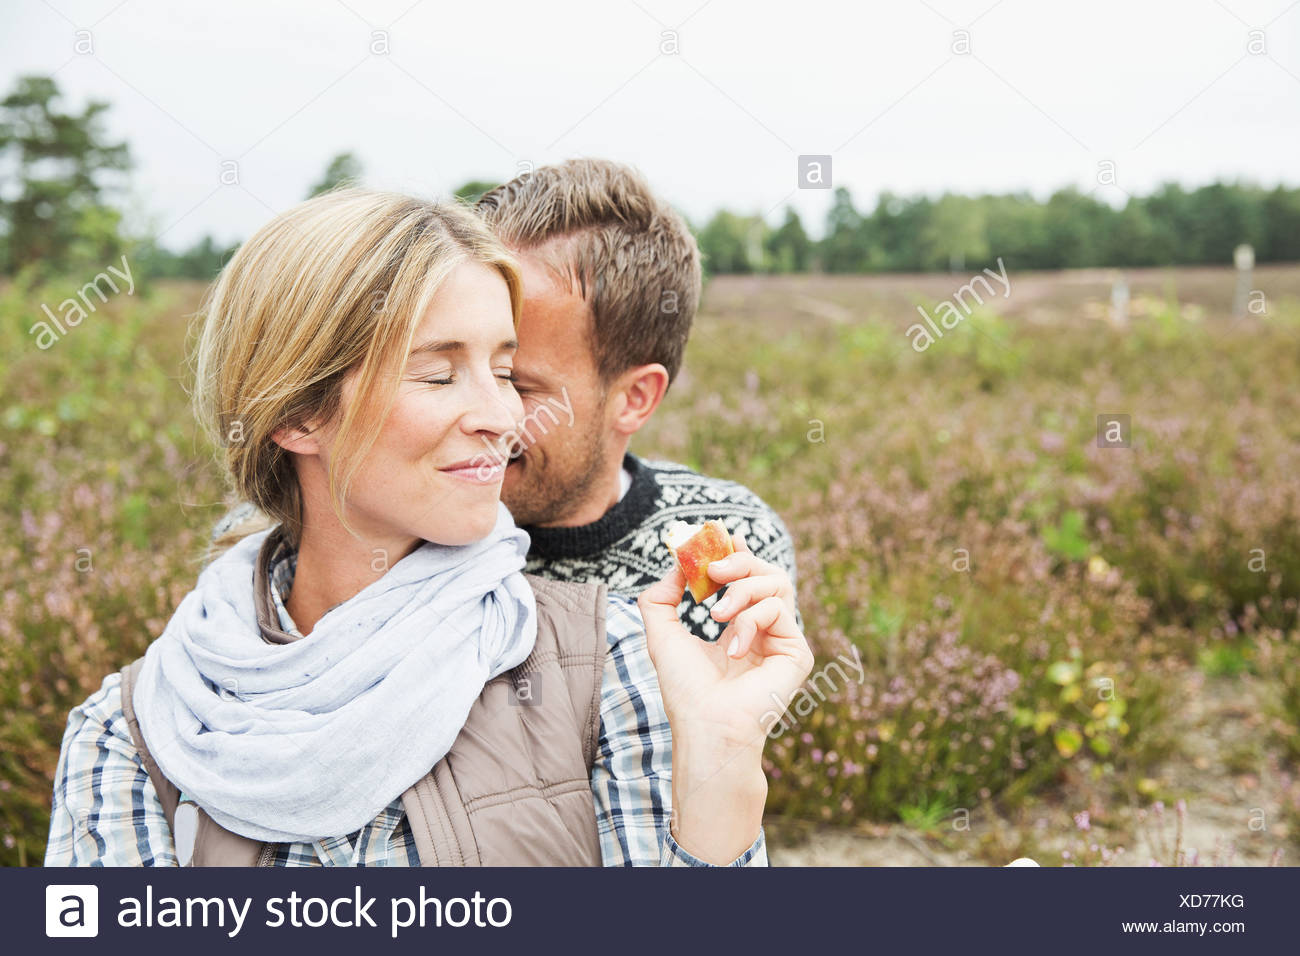 Couple, woman smiling with eyes closed Photo Stock